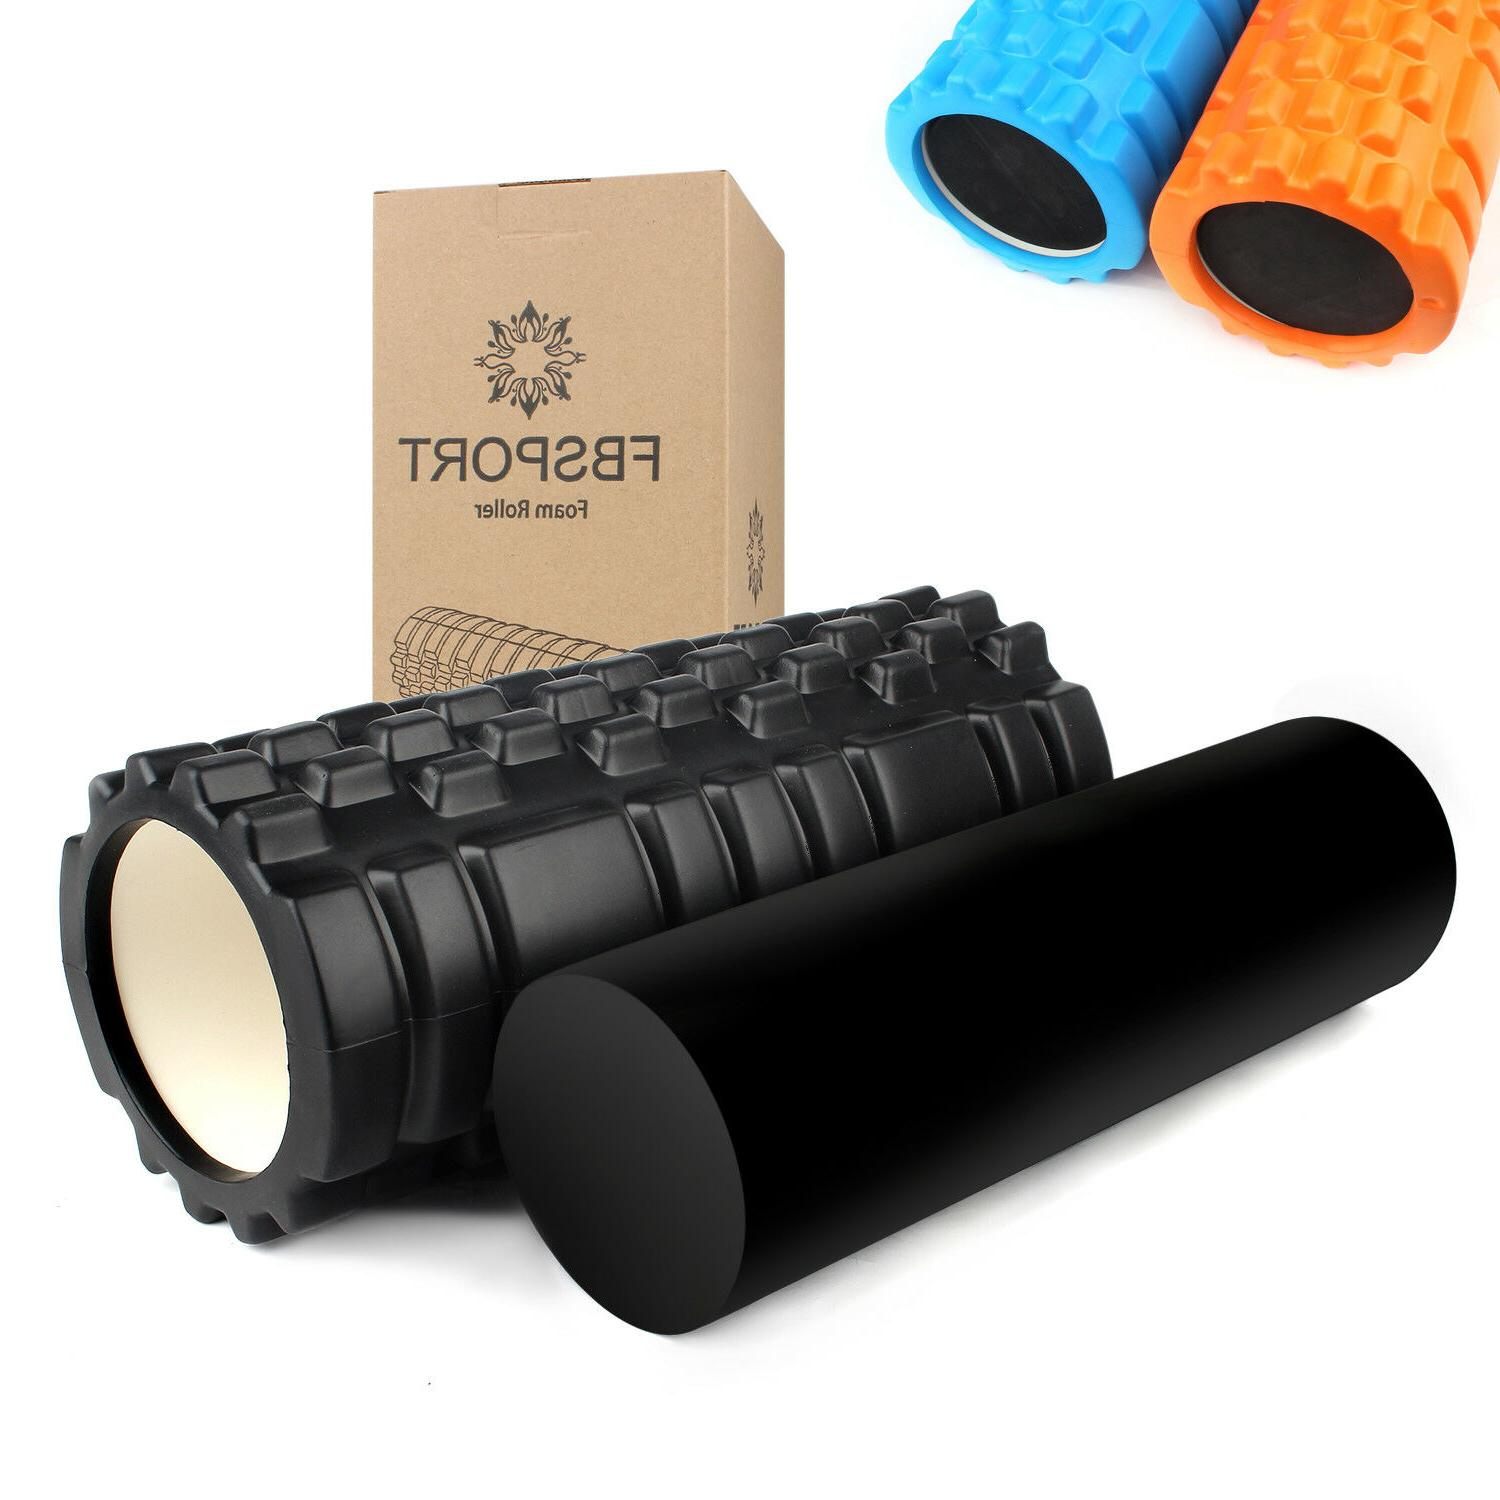 Trigger Tissue Massage Gym Yoga Pilates